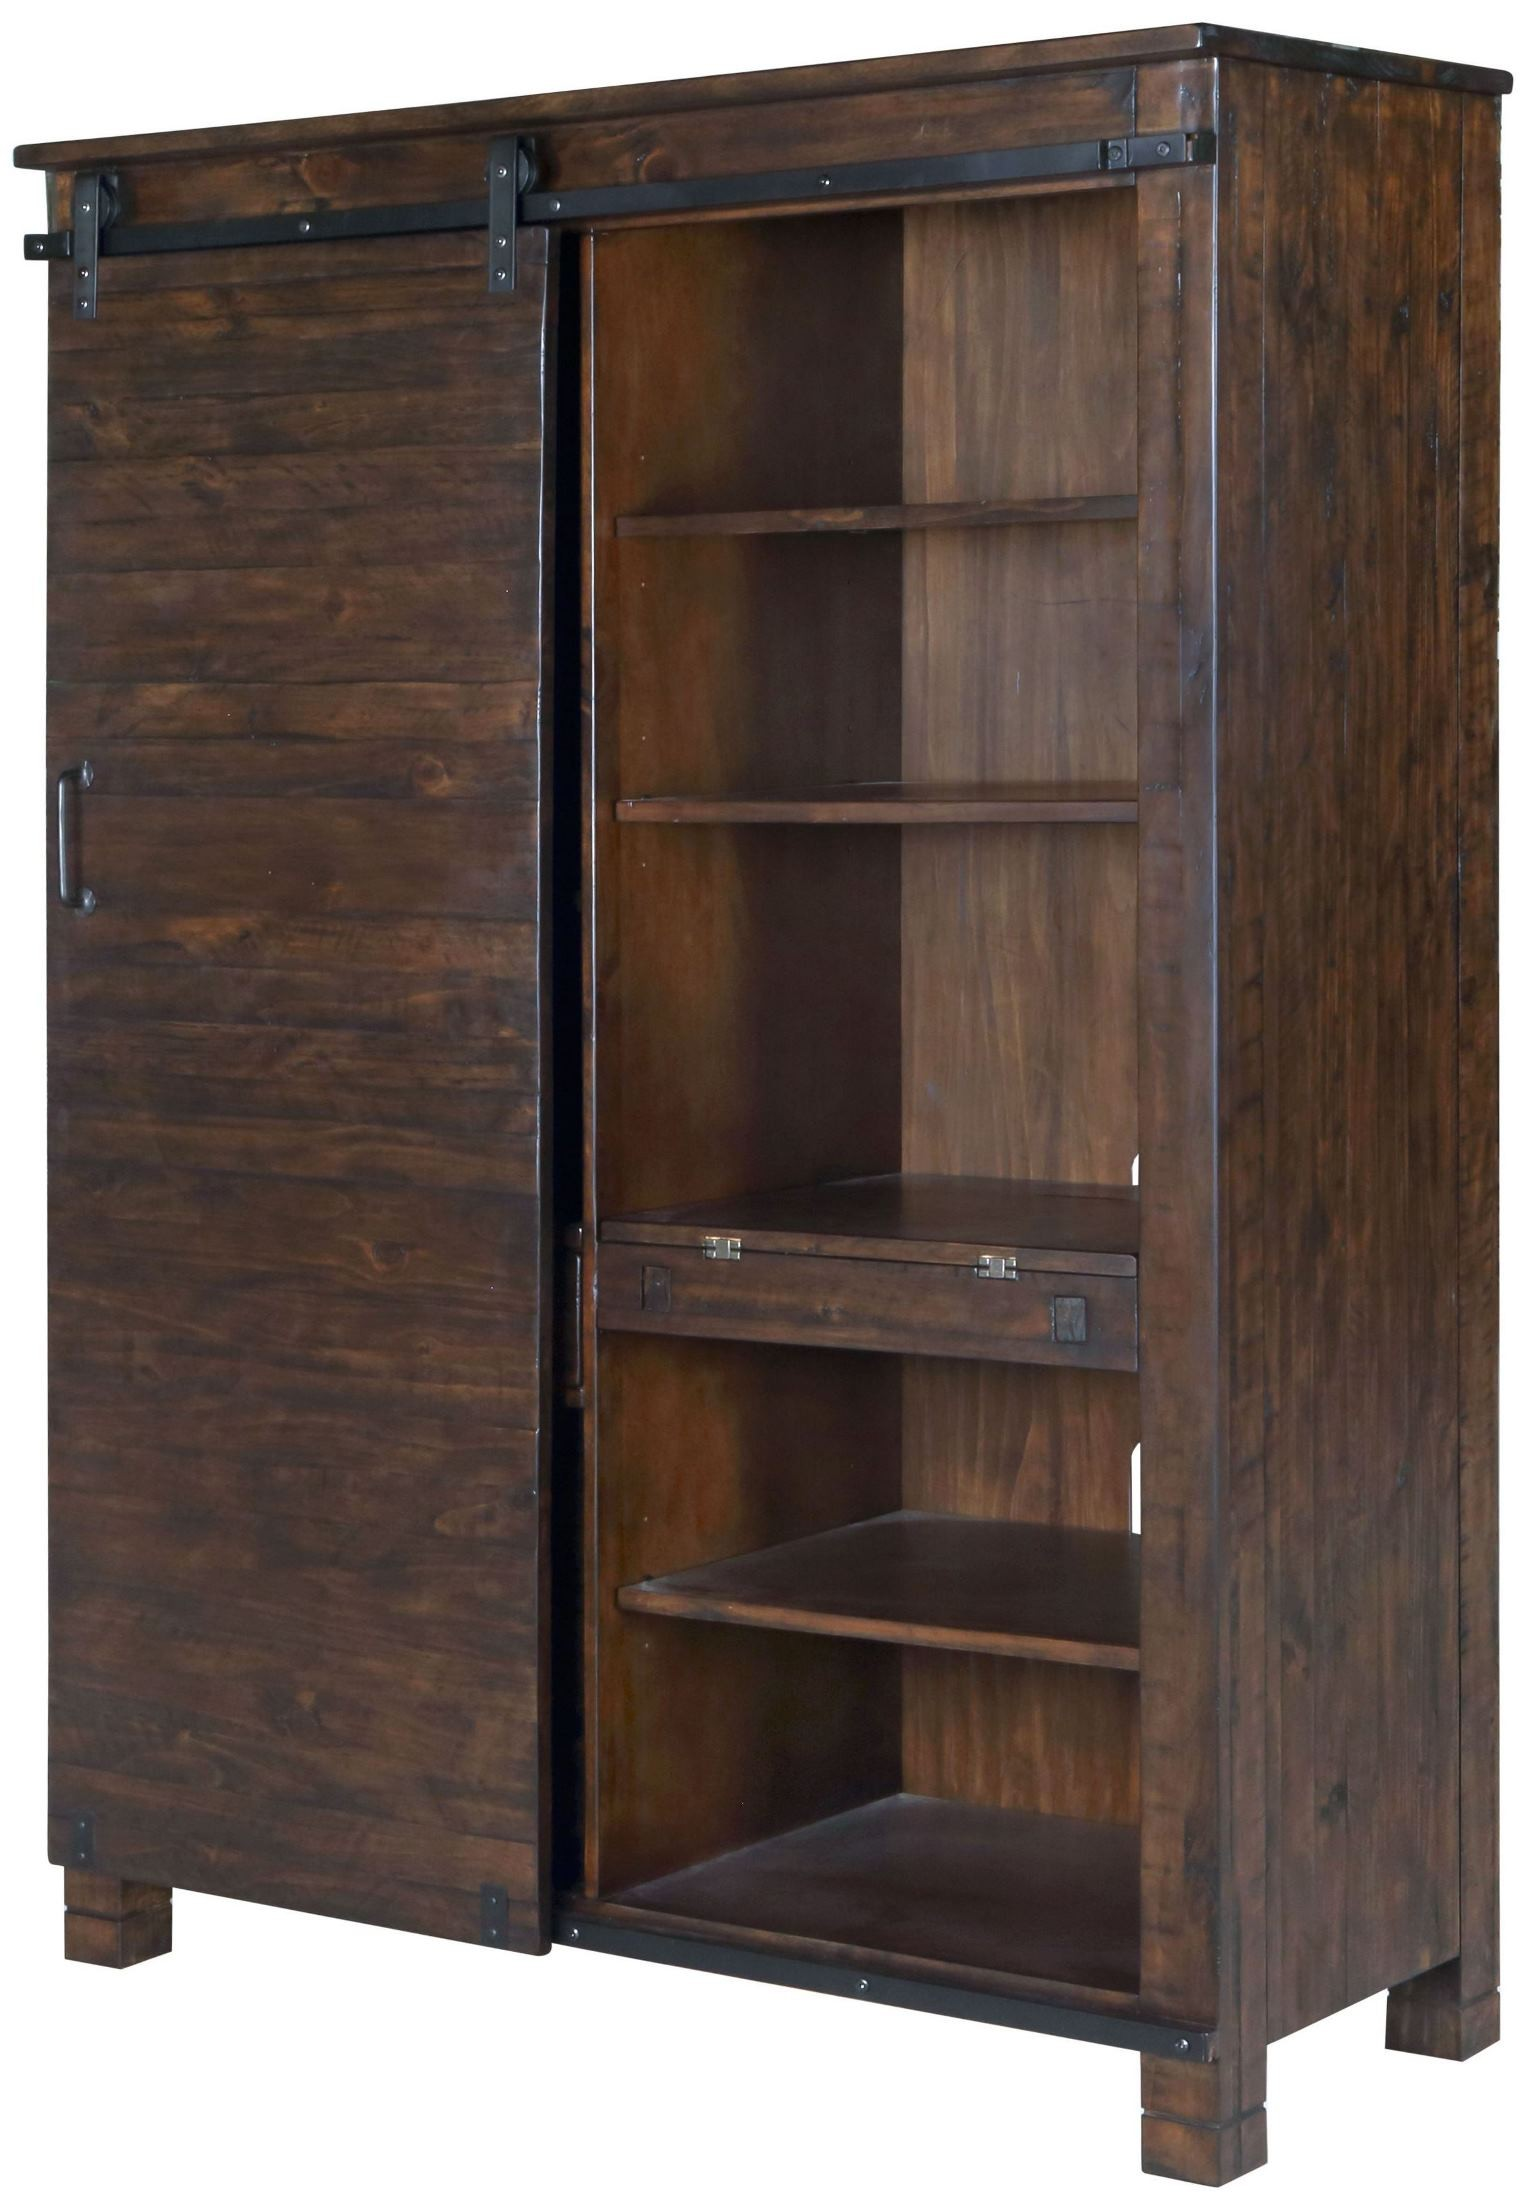 Pine Hill Rustic Door Bookcase From Magnussen Home